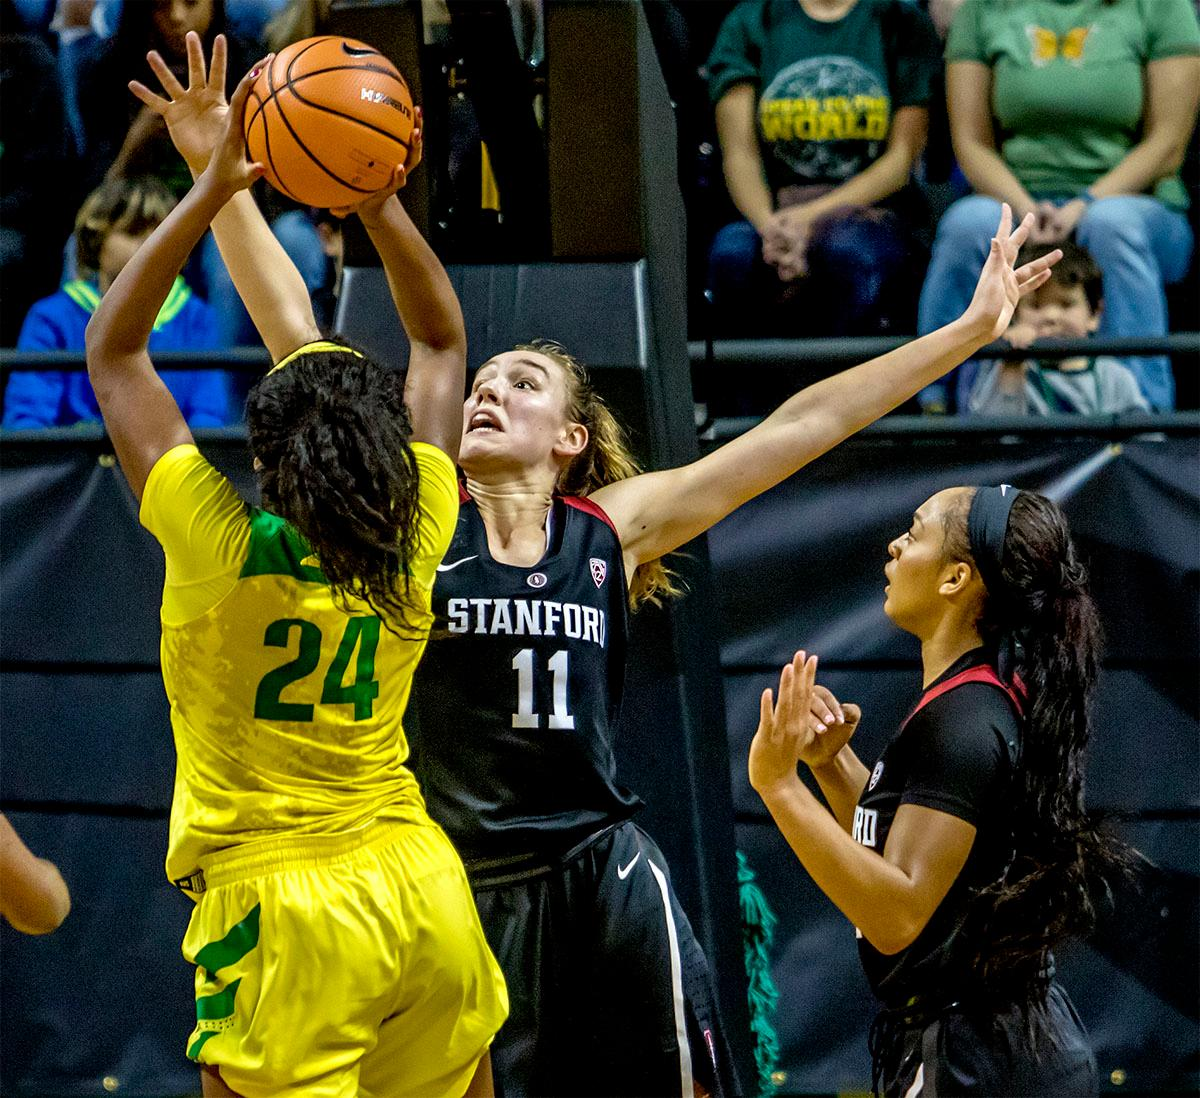 The Duck's Ruthy Hebard (#24) makes a shot as the Cardinal's Alanna Smith (#11) defends. The Stanford Cardinal defeated the Oregon Ducks 78-65 on Sunday afternoon at Matthew Knight Arena. Stanford is now 10-2 in conference play and with this loss the Ducks drop to 10-2. Leading the Stanford Cardinal was Brittany McPhee with 33 points, Alanna Smith with 14 points, and Kiana Williams with 14 points. For the Ducks Sabrina Ionescu led with 22 points, Ruthy Hebard added 16 points, and Satou Sabally put in 14 points. Photo by August Frank, Oregon News Lab